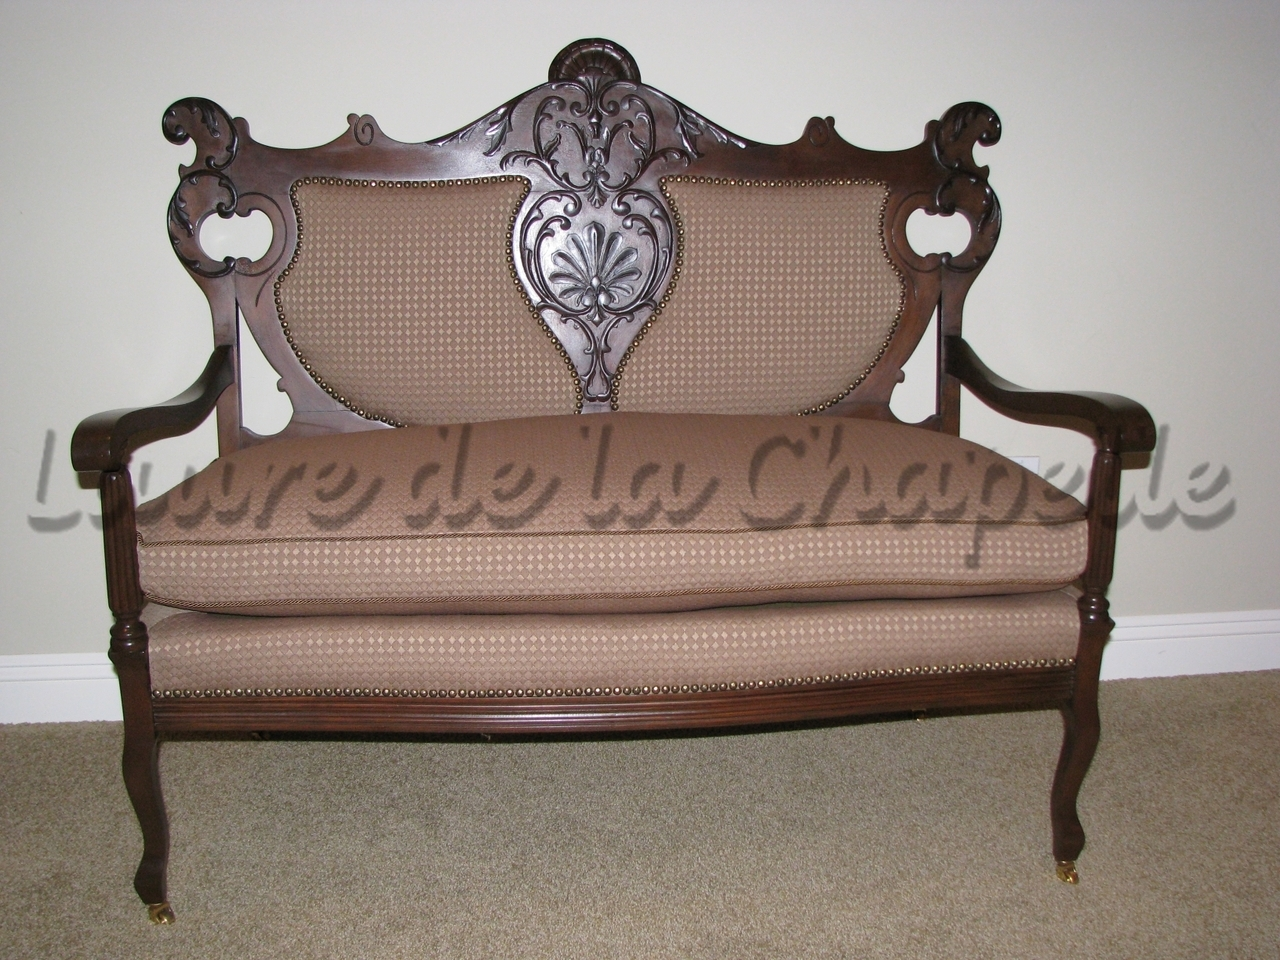 antique furniture san diego Antique Furniture Restoration San Diego | Upholstery & Restoration antique furniture san diego